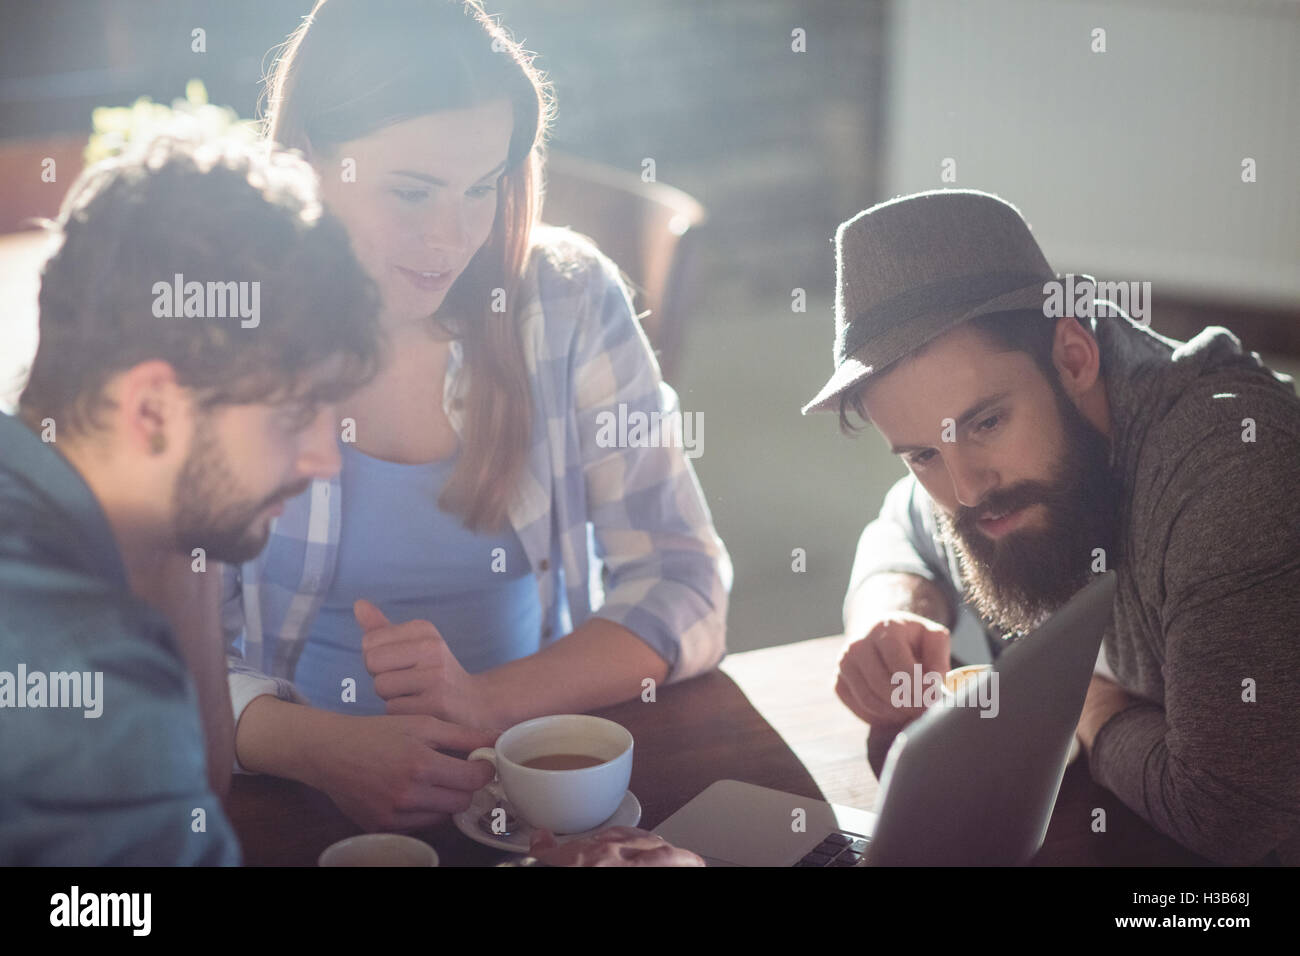 Young customers looking at laptop at cafe - Stock Image